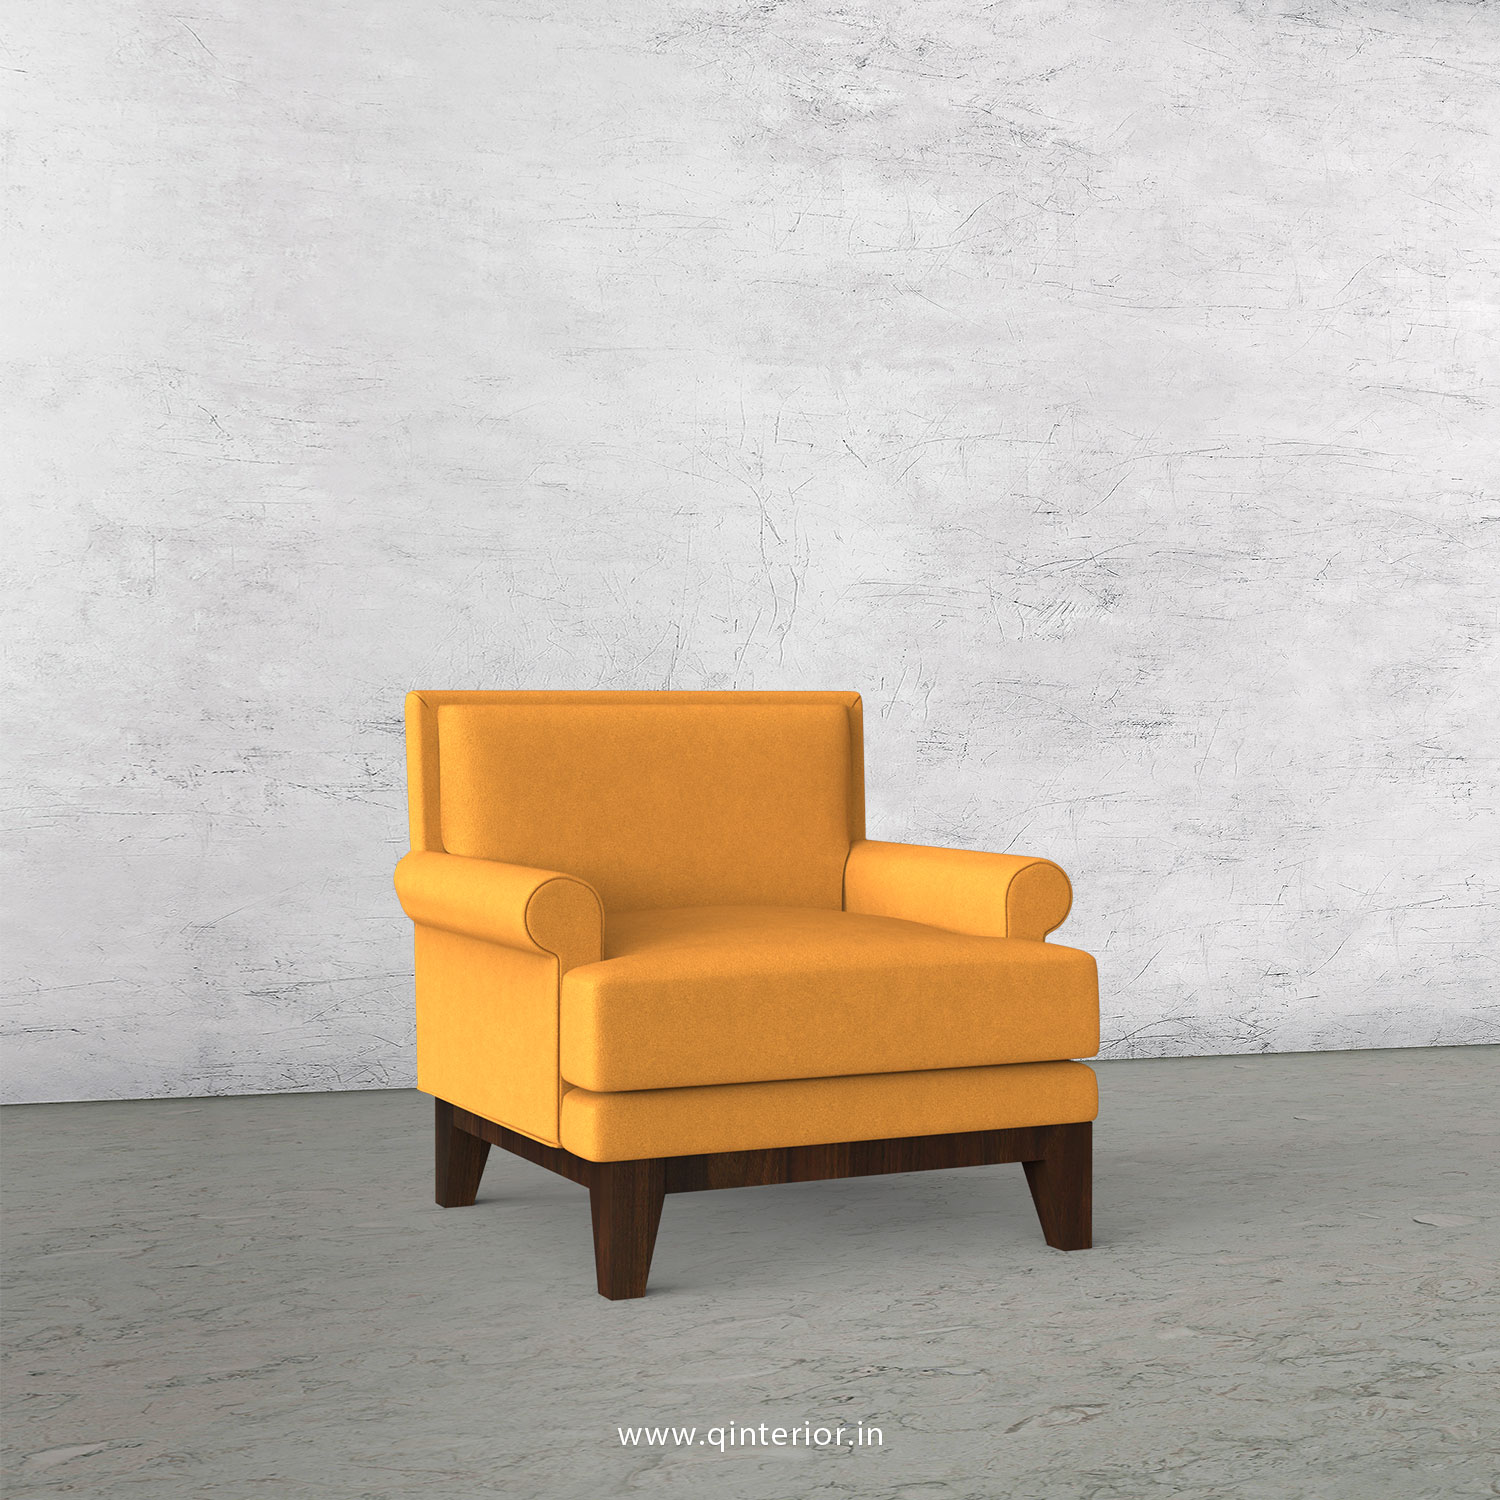 Aviana 1 Seater Sofa in Velvet Fabric - SFA001 VL18